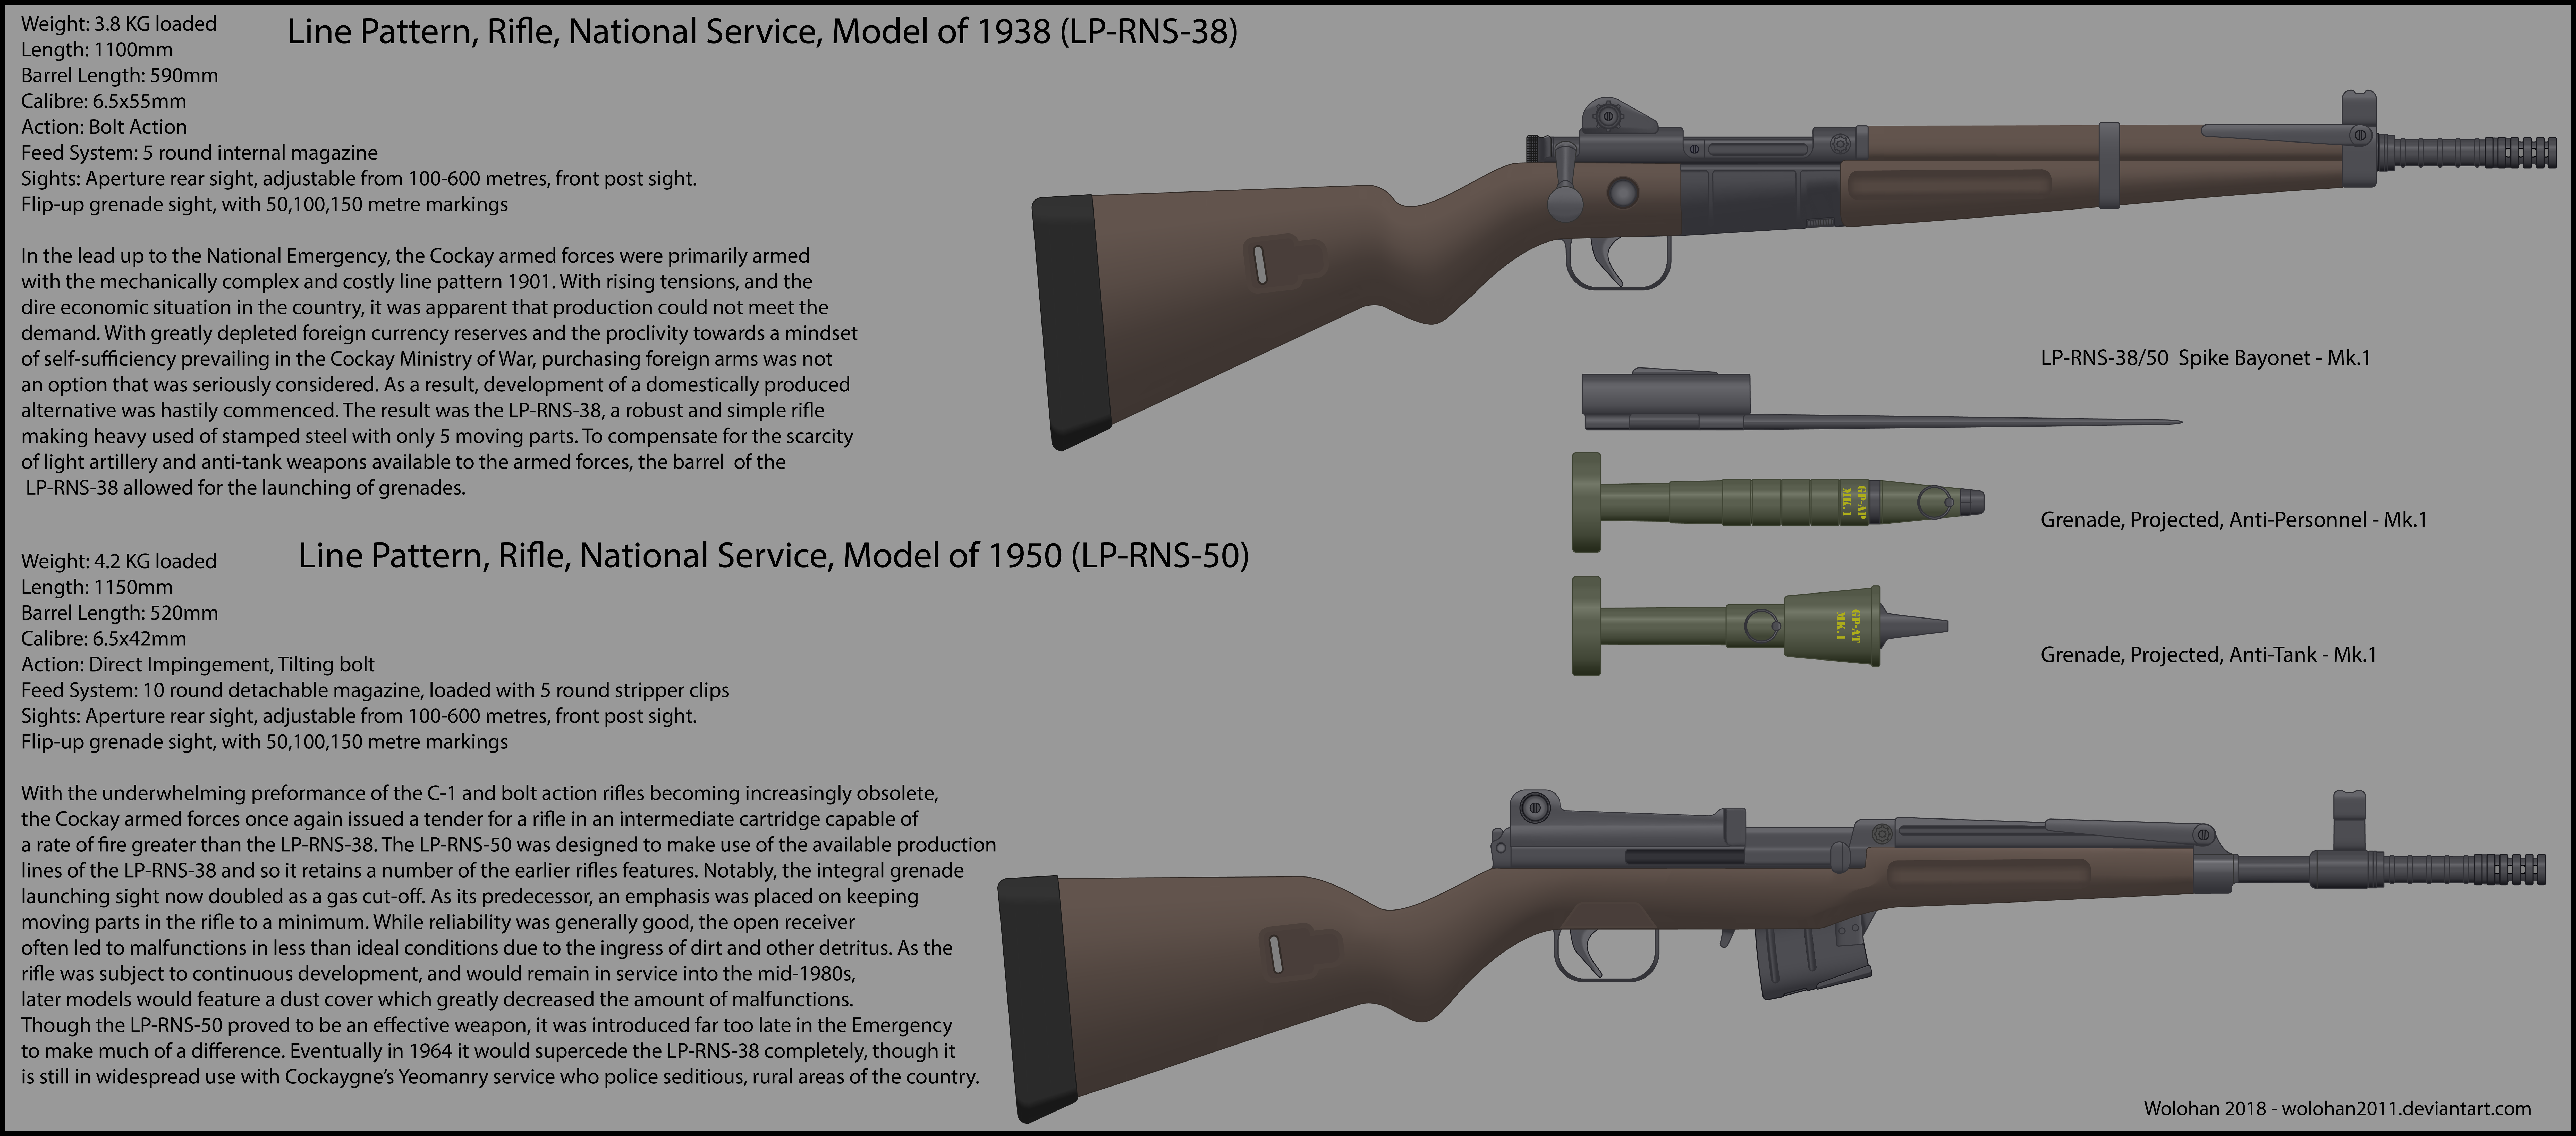 National Service Rifles, Models of 1938 and 1950 by